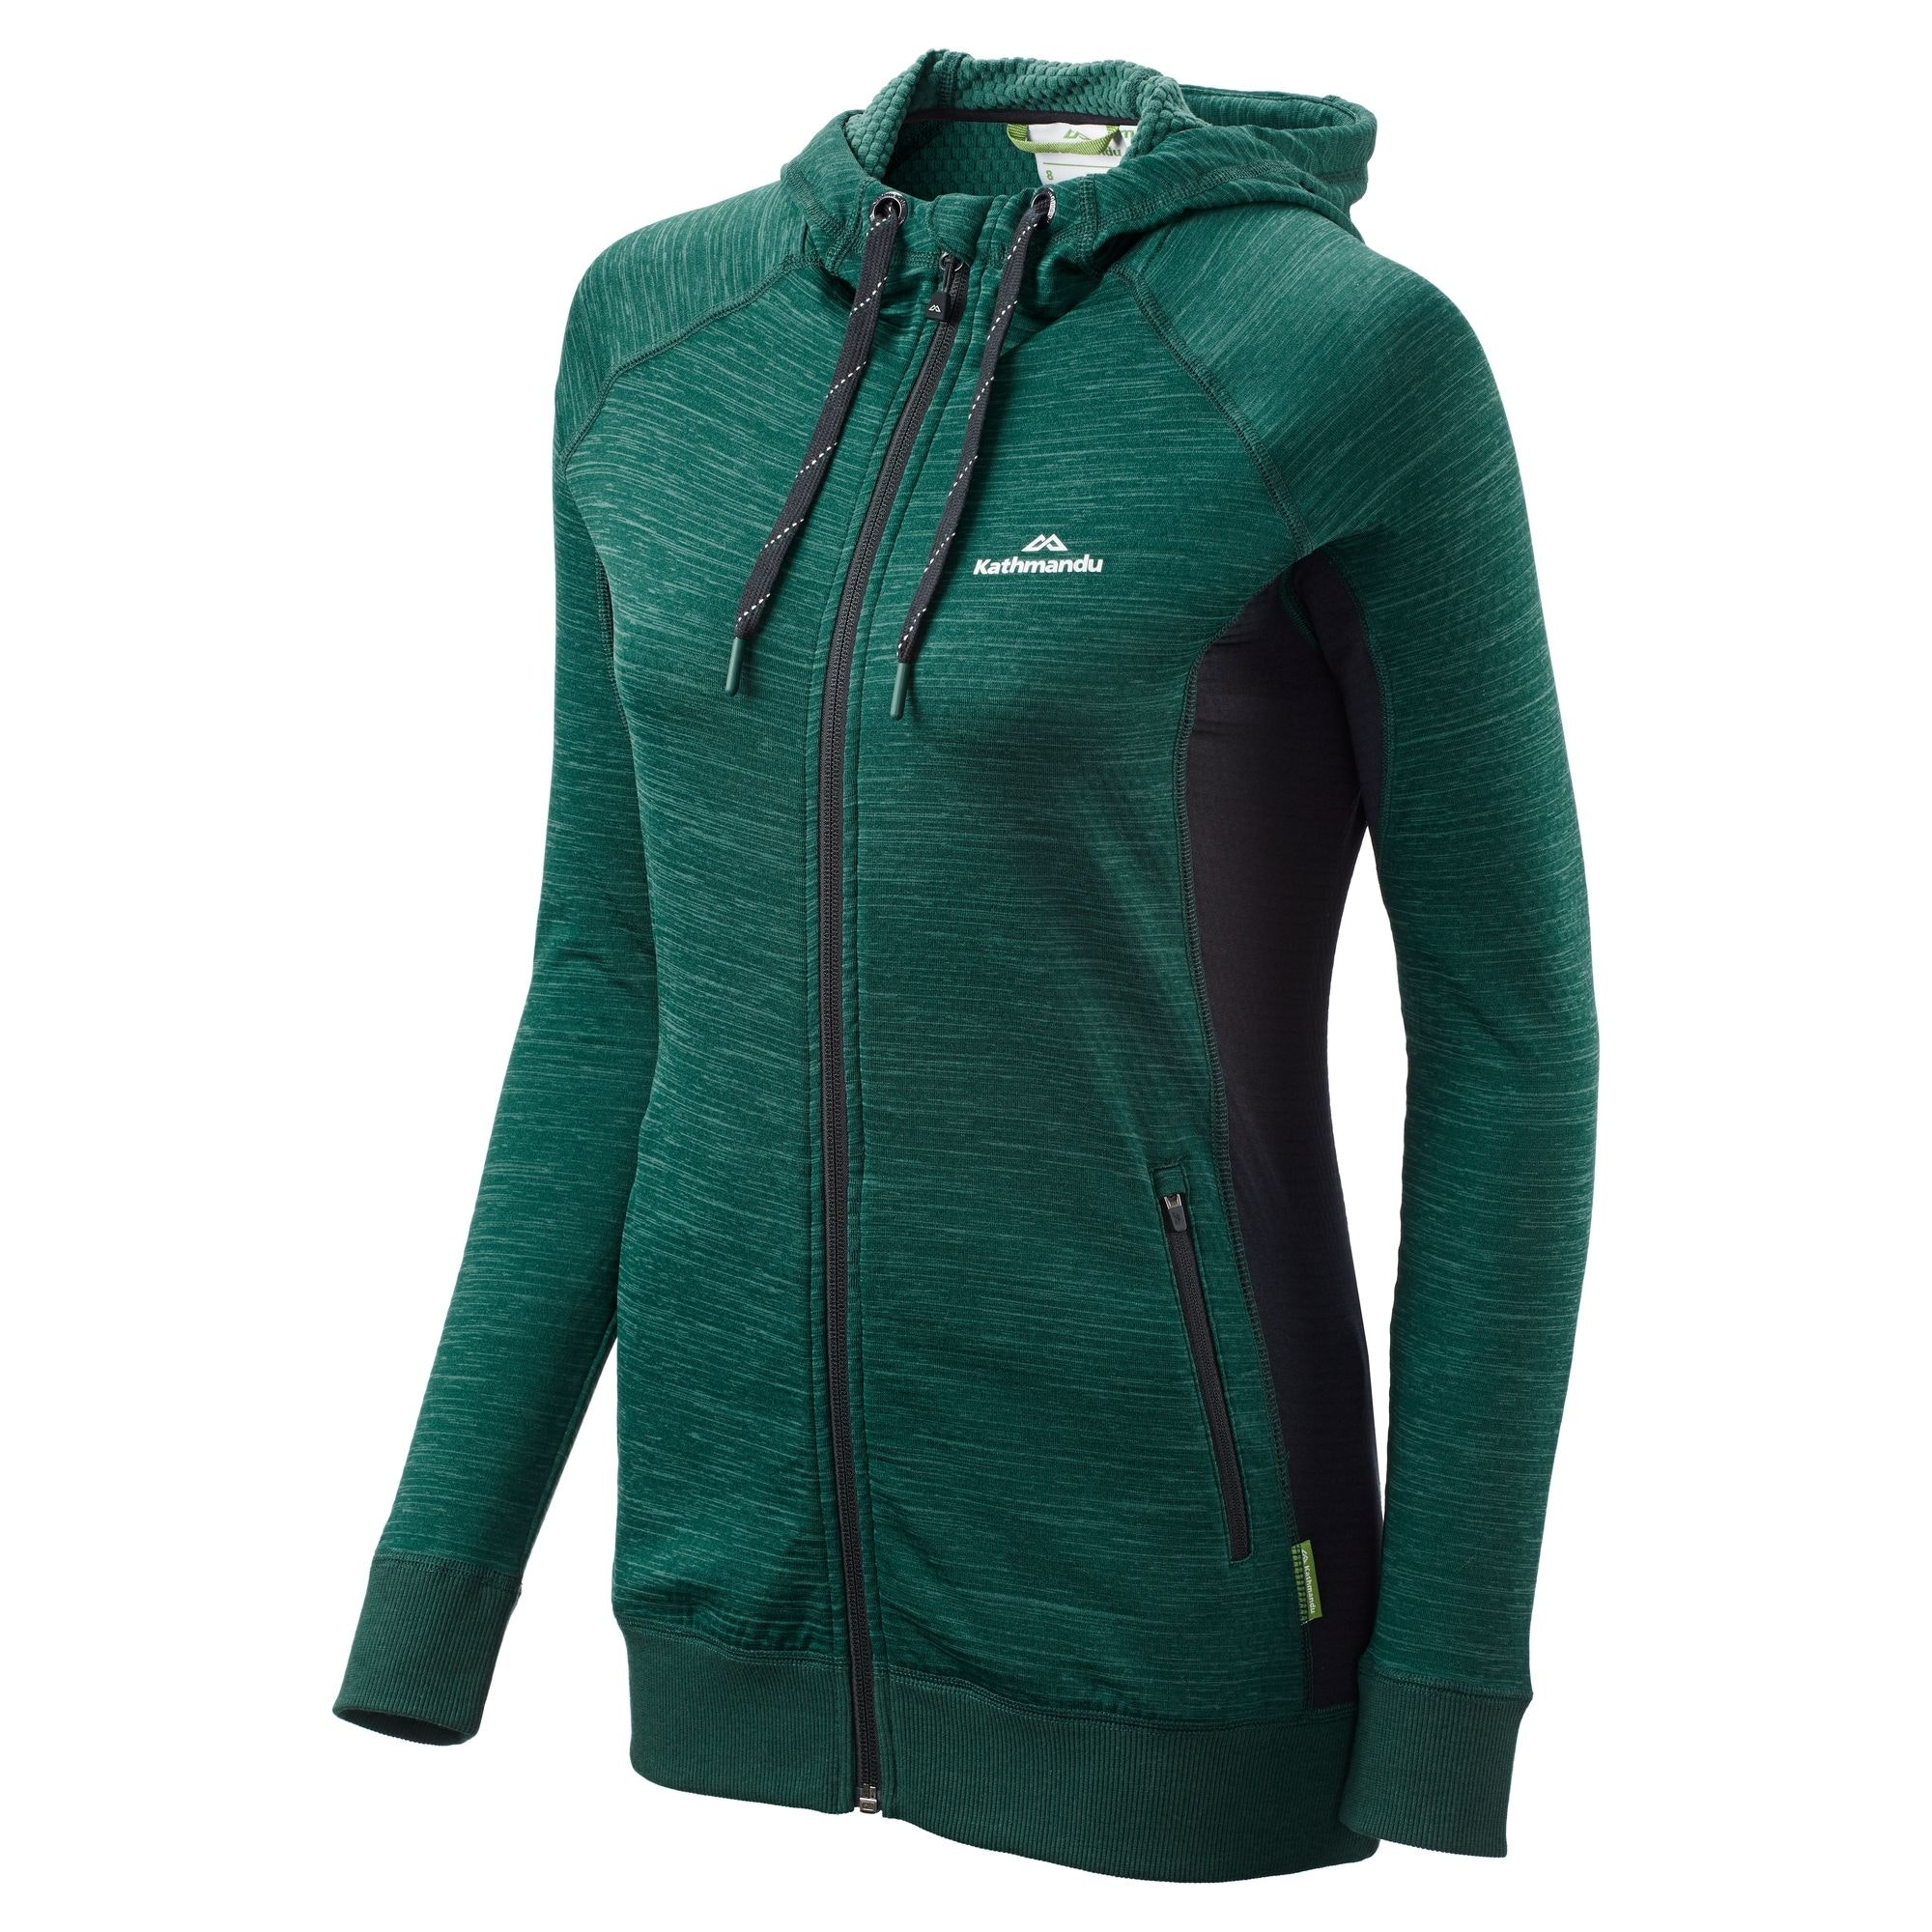 NEW-Kathmandu-Acota-Women-s-Hooded-Fleece-Lightweight-Breathable-Outdoor-Jacket thumbnail 8